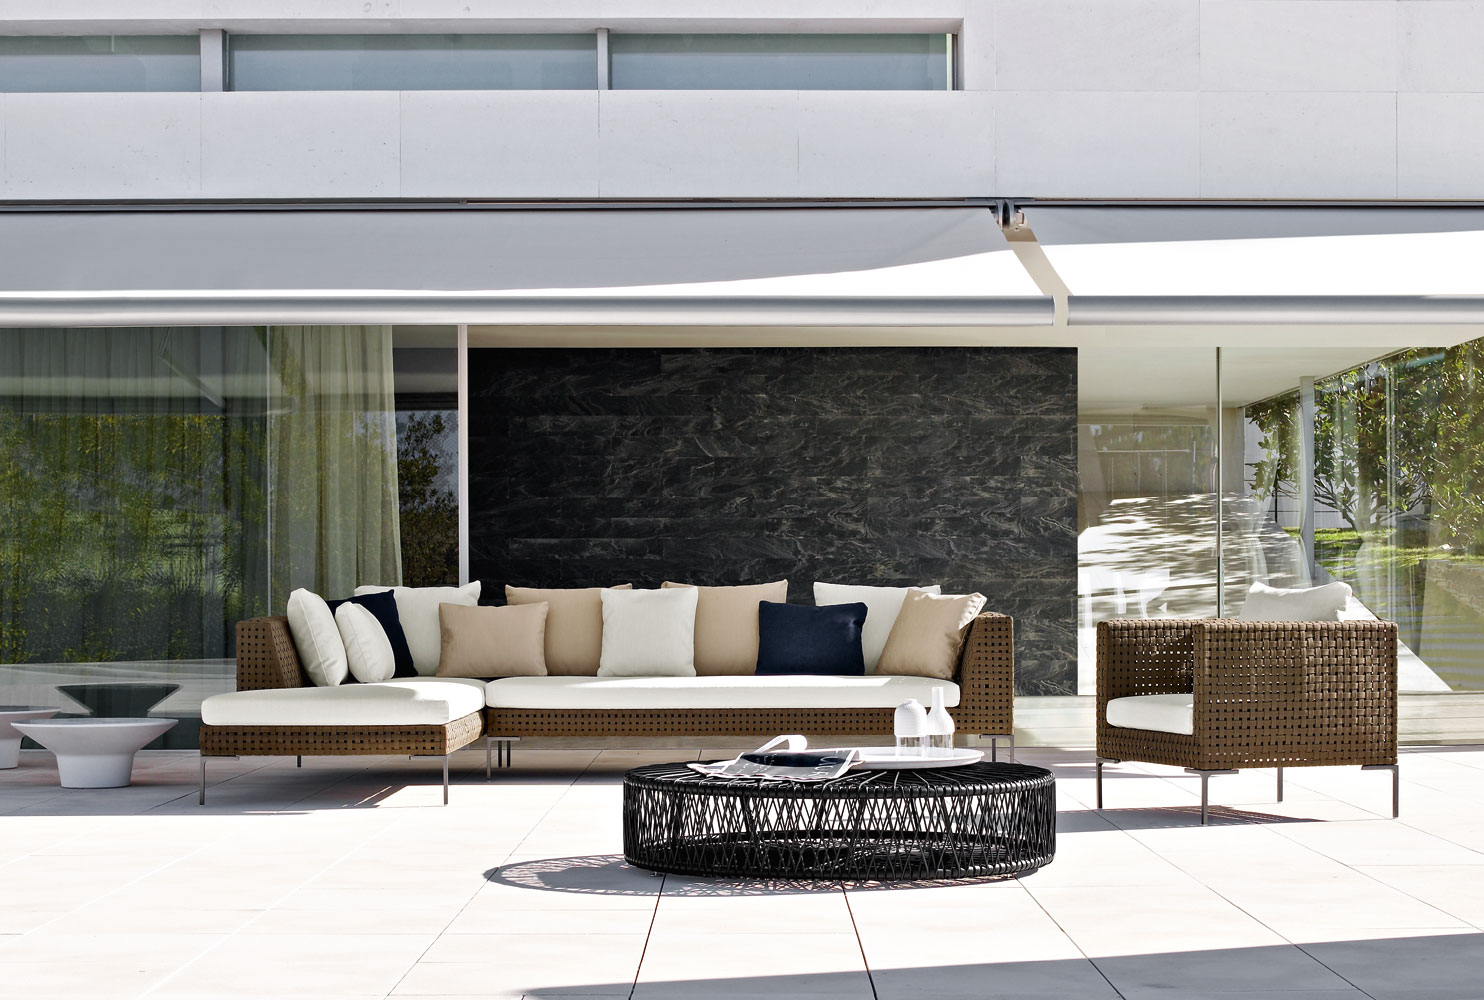 Peachy Modern Water Repellent Aluminum Sectional Sofa Contract Ibusinesslaw Wood Chair Design Ideas Ibusinesslaworg